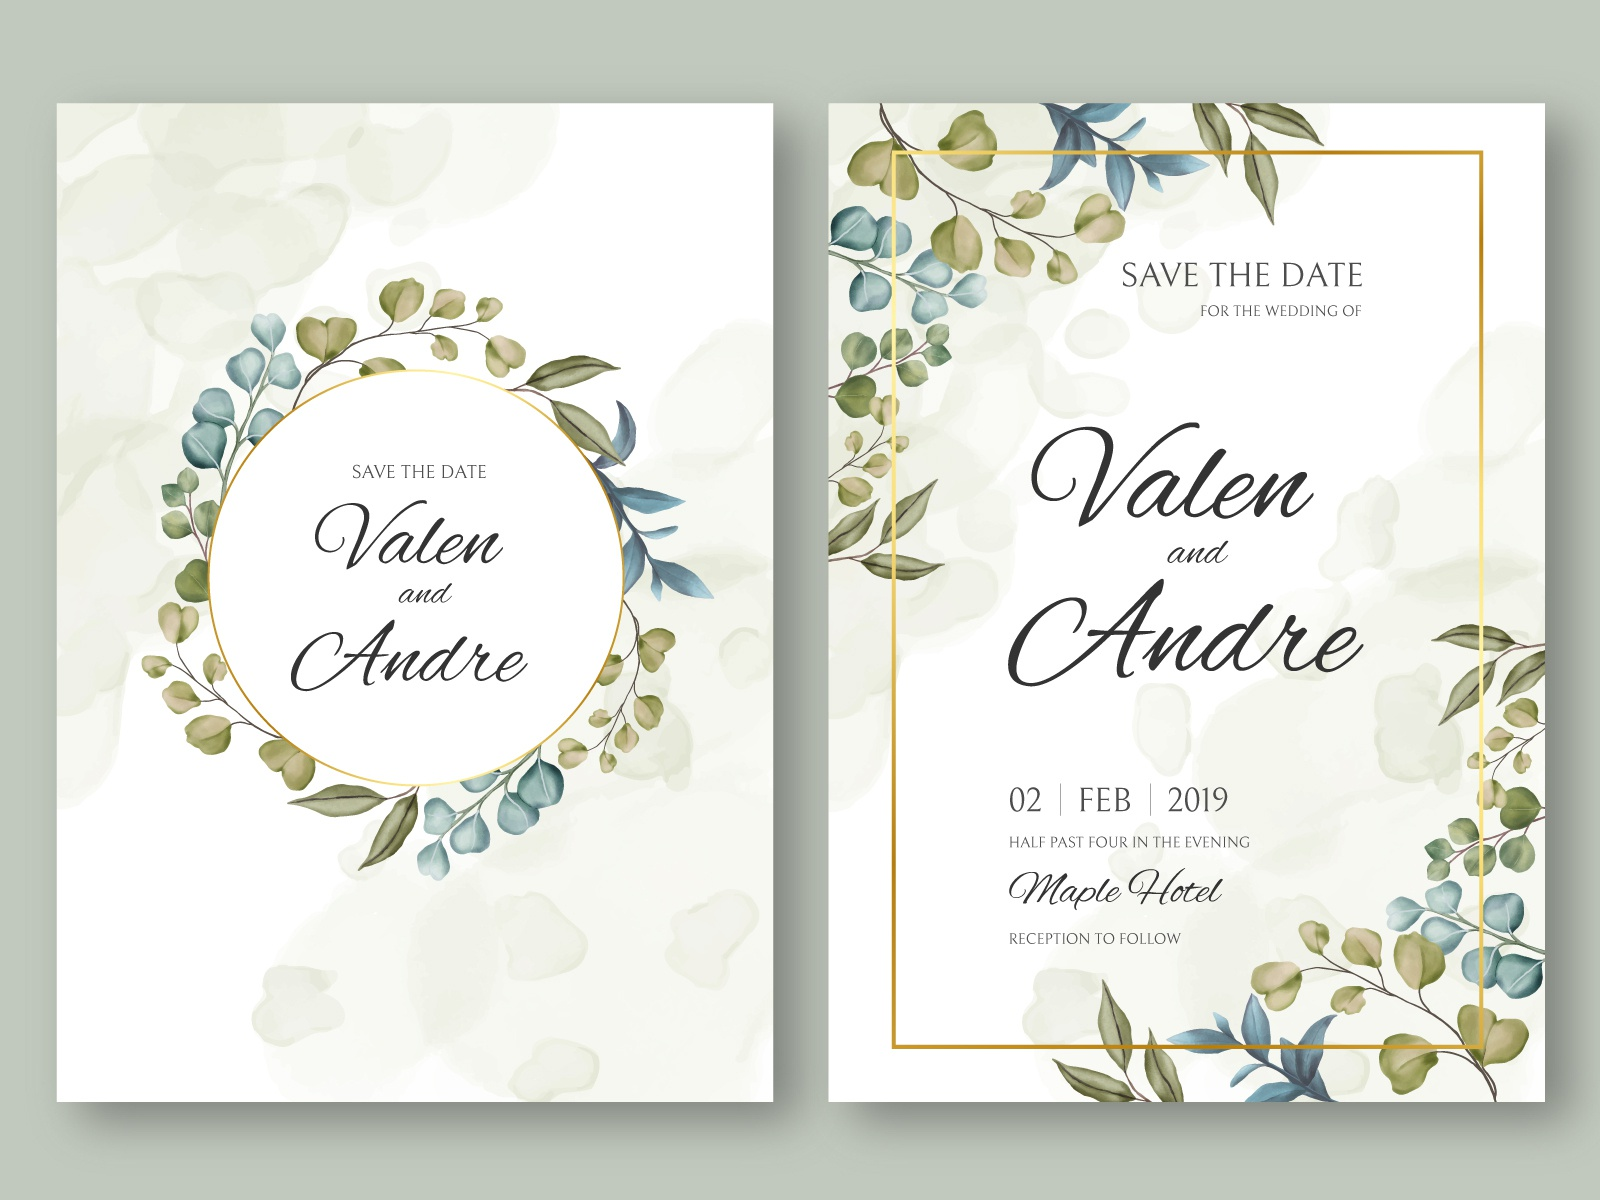 vintage wedding invitation card template with leaves background by dheo donny adittya on dribbble vintage wedding invitation card